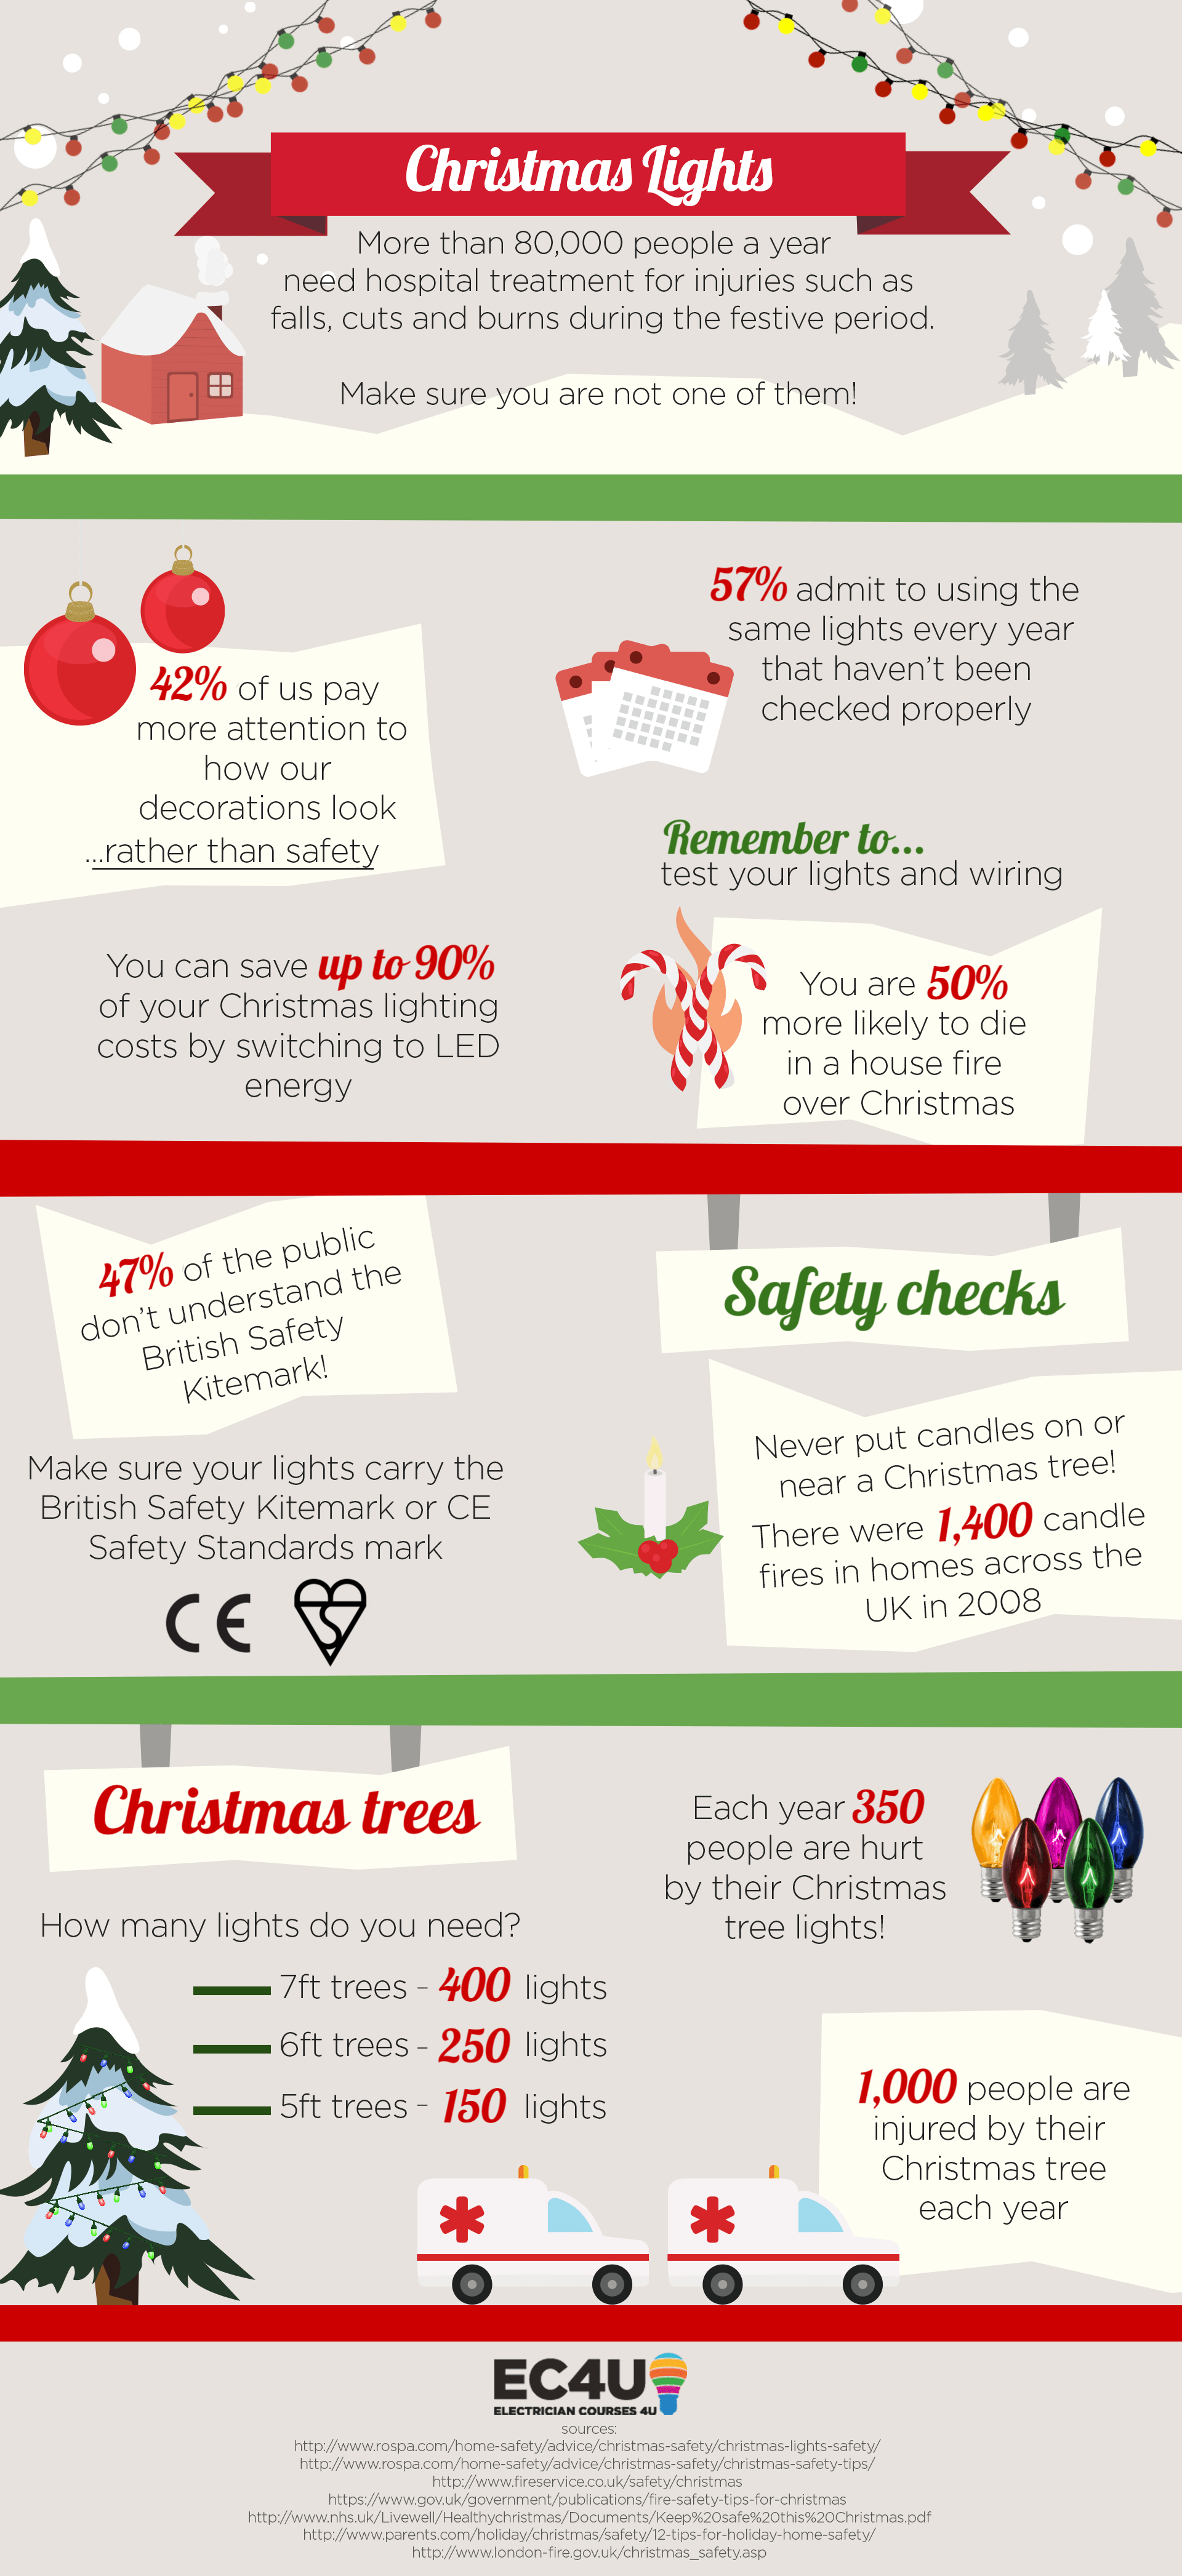 The Complete Guide To Led Christmas Lights Electrician Courses 4u How Tree Switch And Circuit Work Lighting Facts